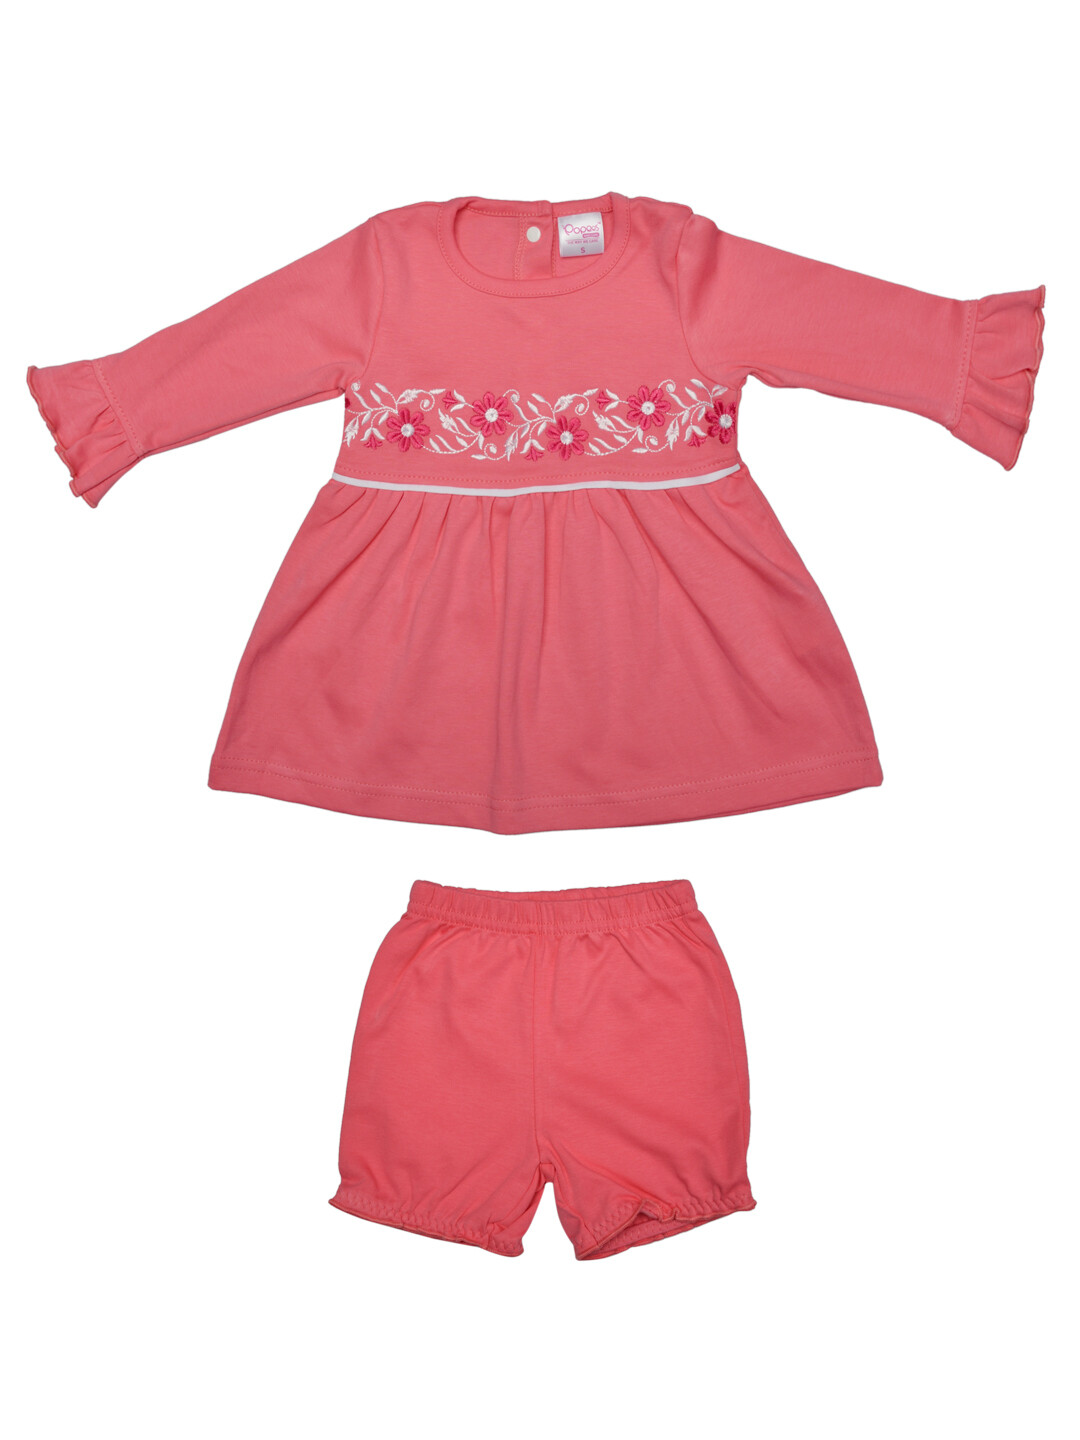 Lorena Corel Full Sleeves Flower Embroidered Top with Shorts M (6-12 Months)